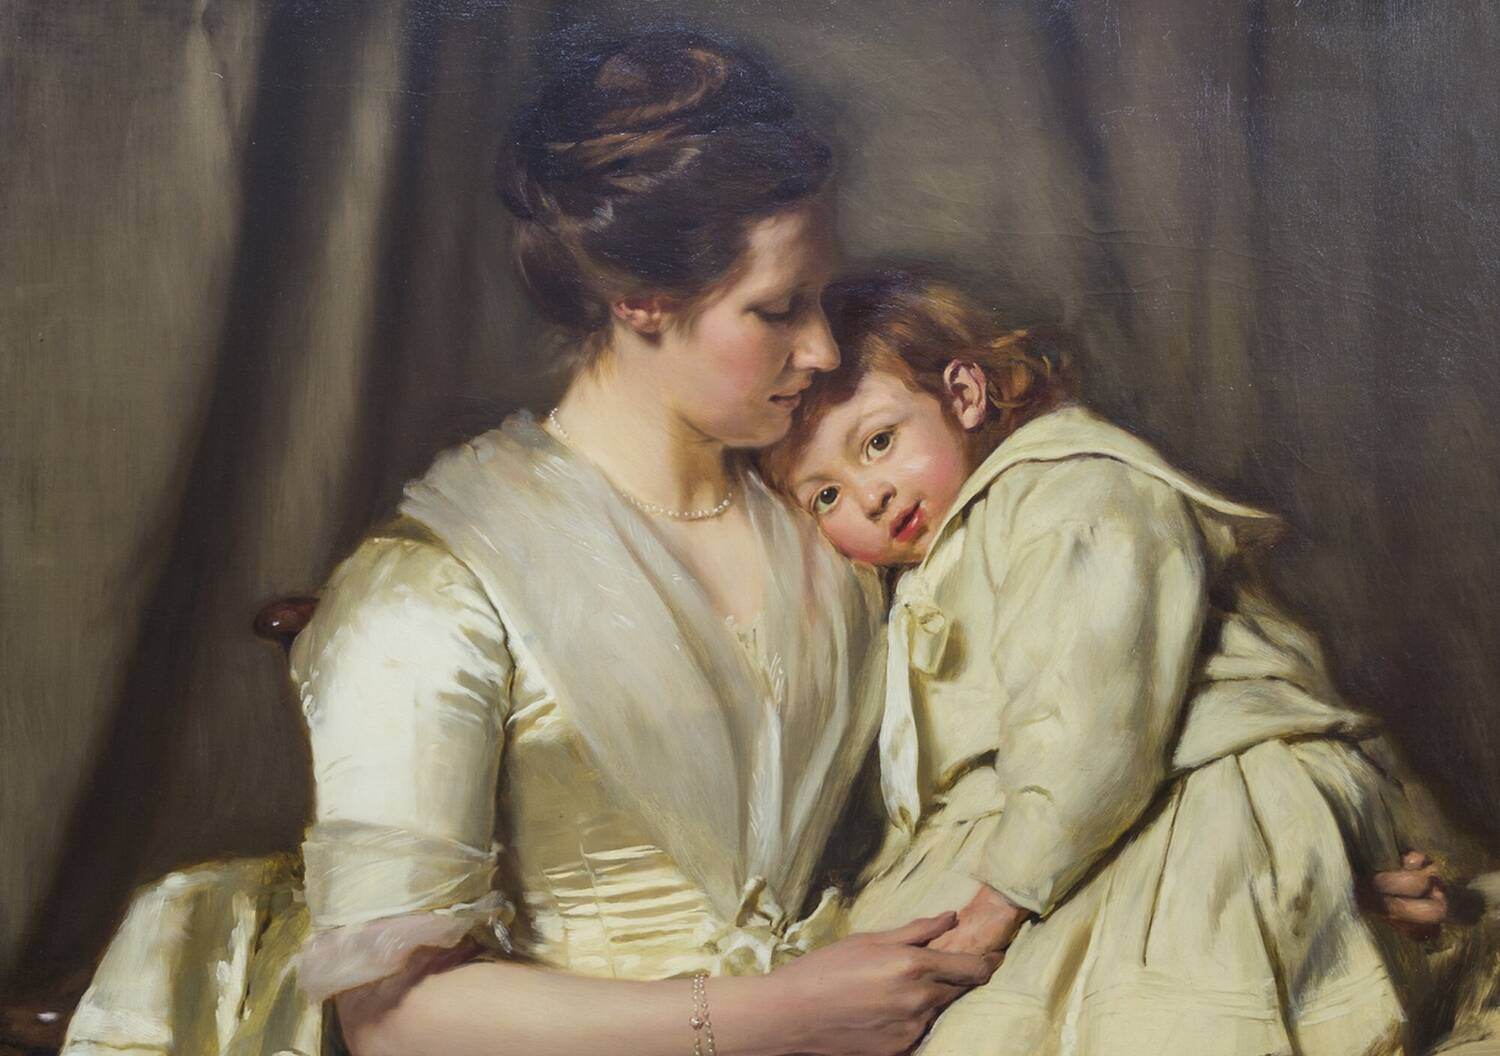 Cropped image of a painting showing a lady in period clothes gazing at a child who is resting against her shoulder.